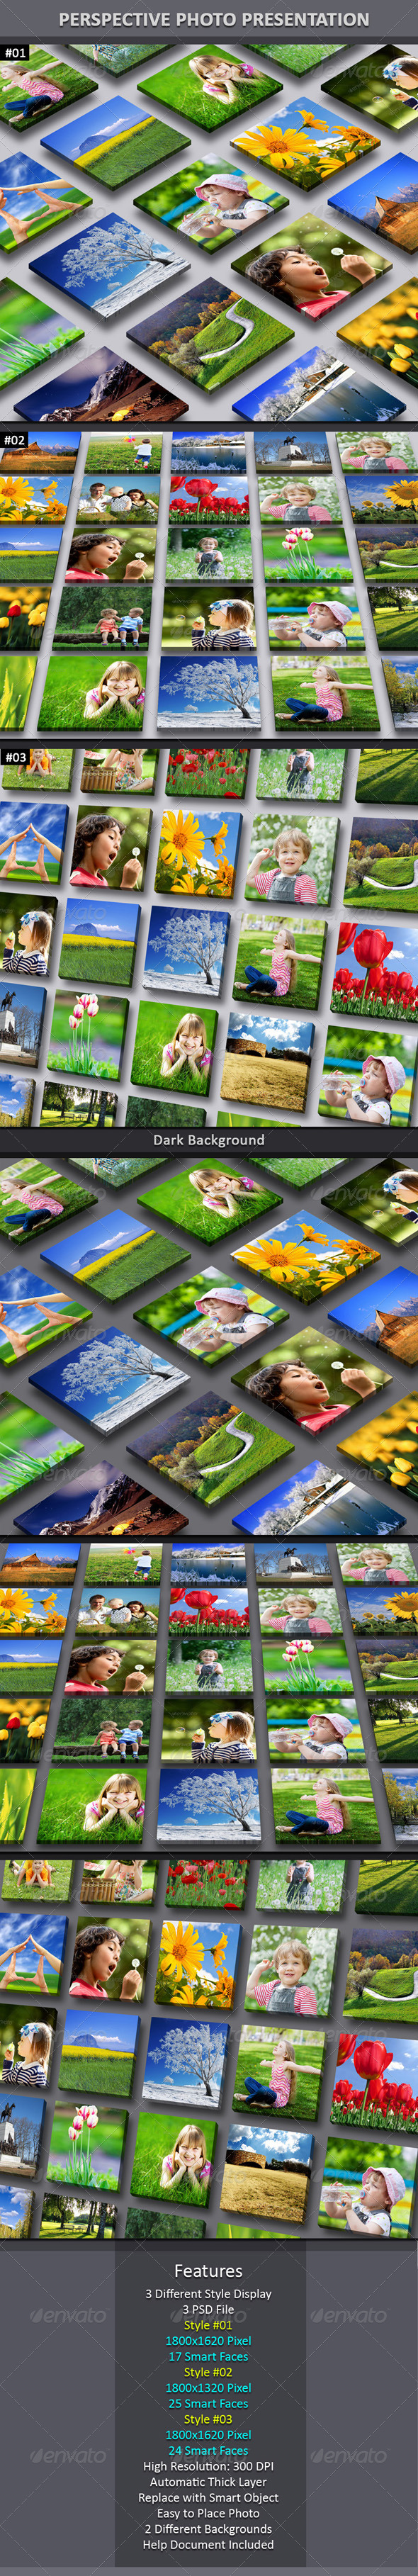 Perspective Photo Presentation - Miscellaneous Photo Templates